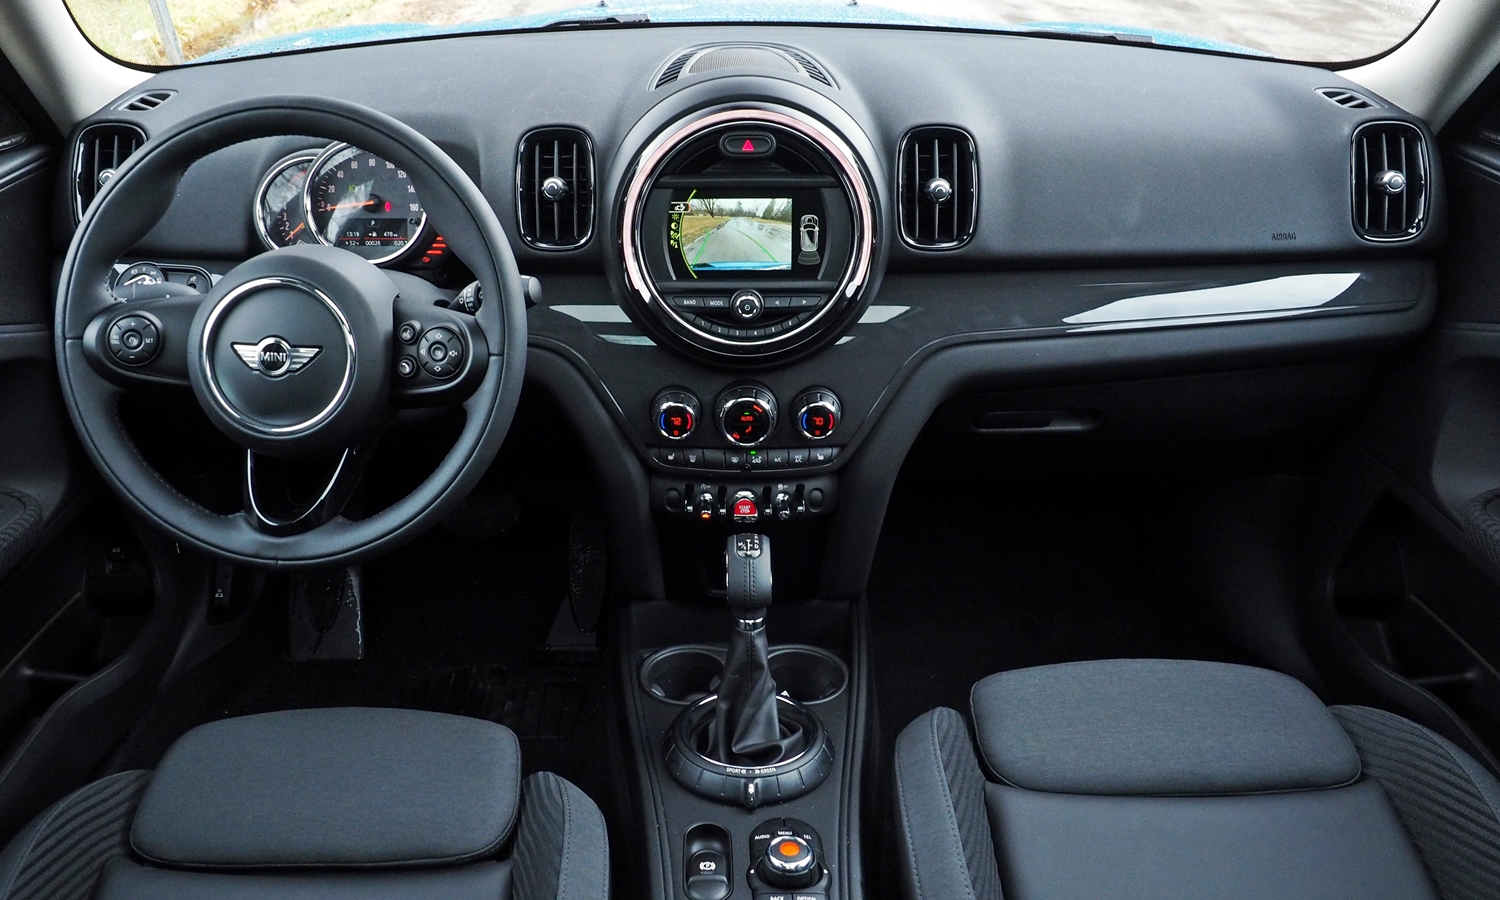 Kia Soul Photos: 2017 Mini Countryman instrument panel